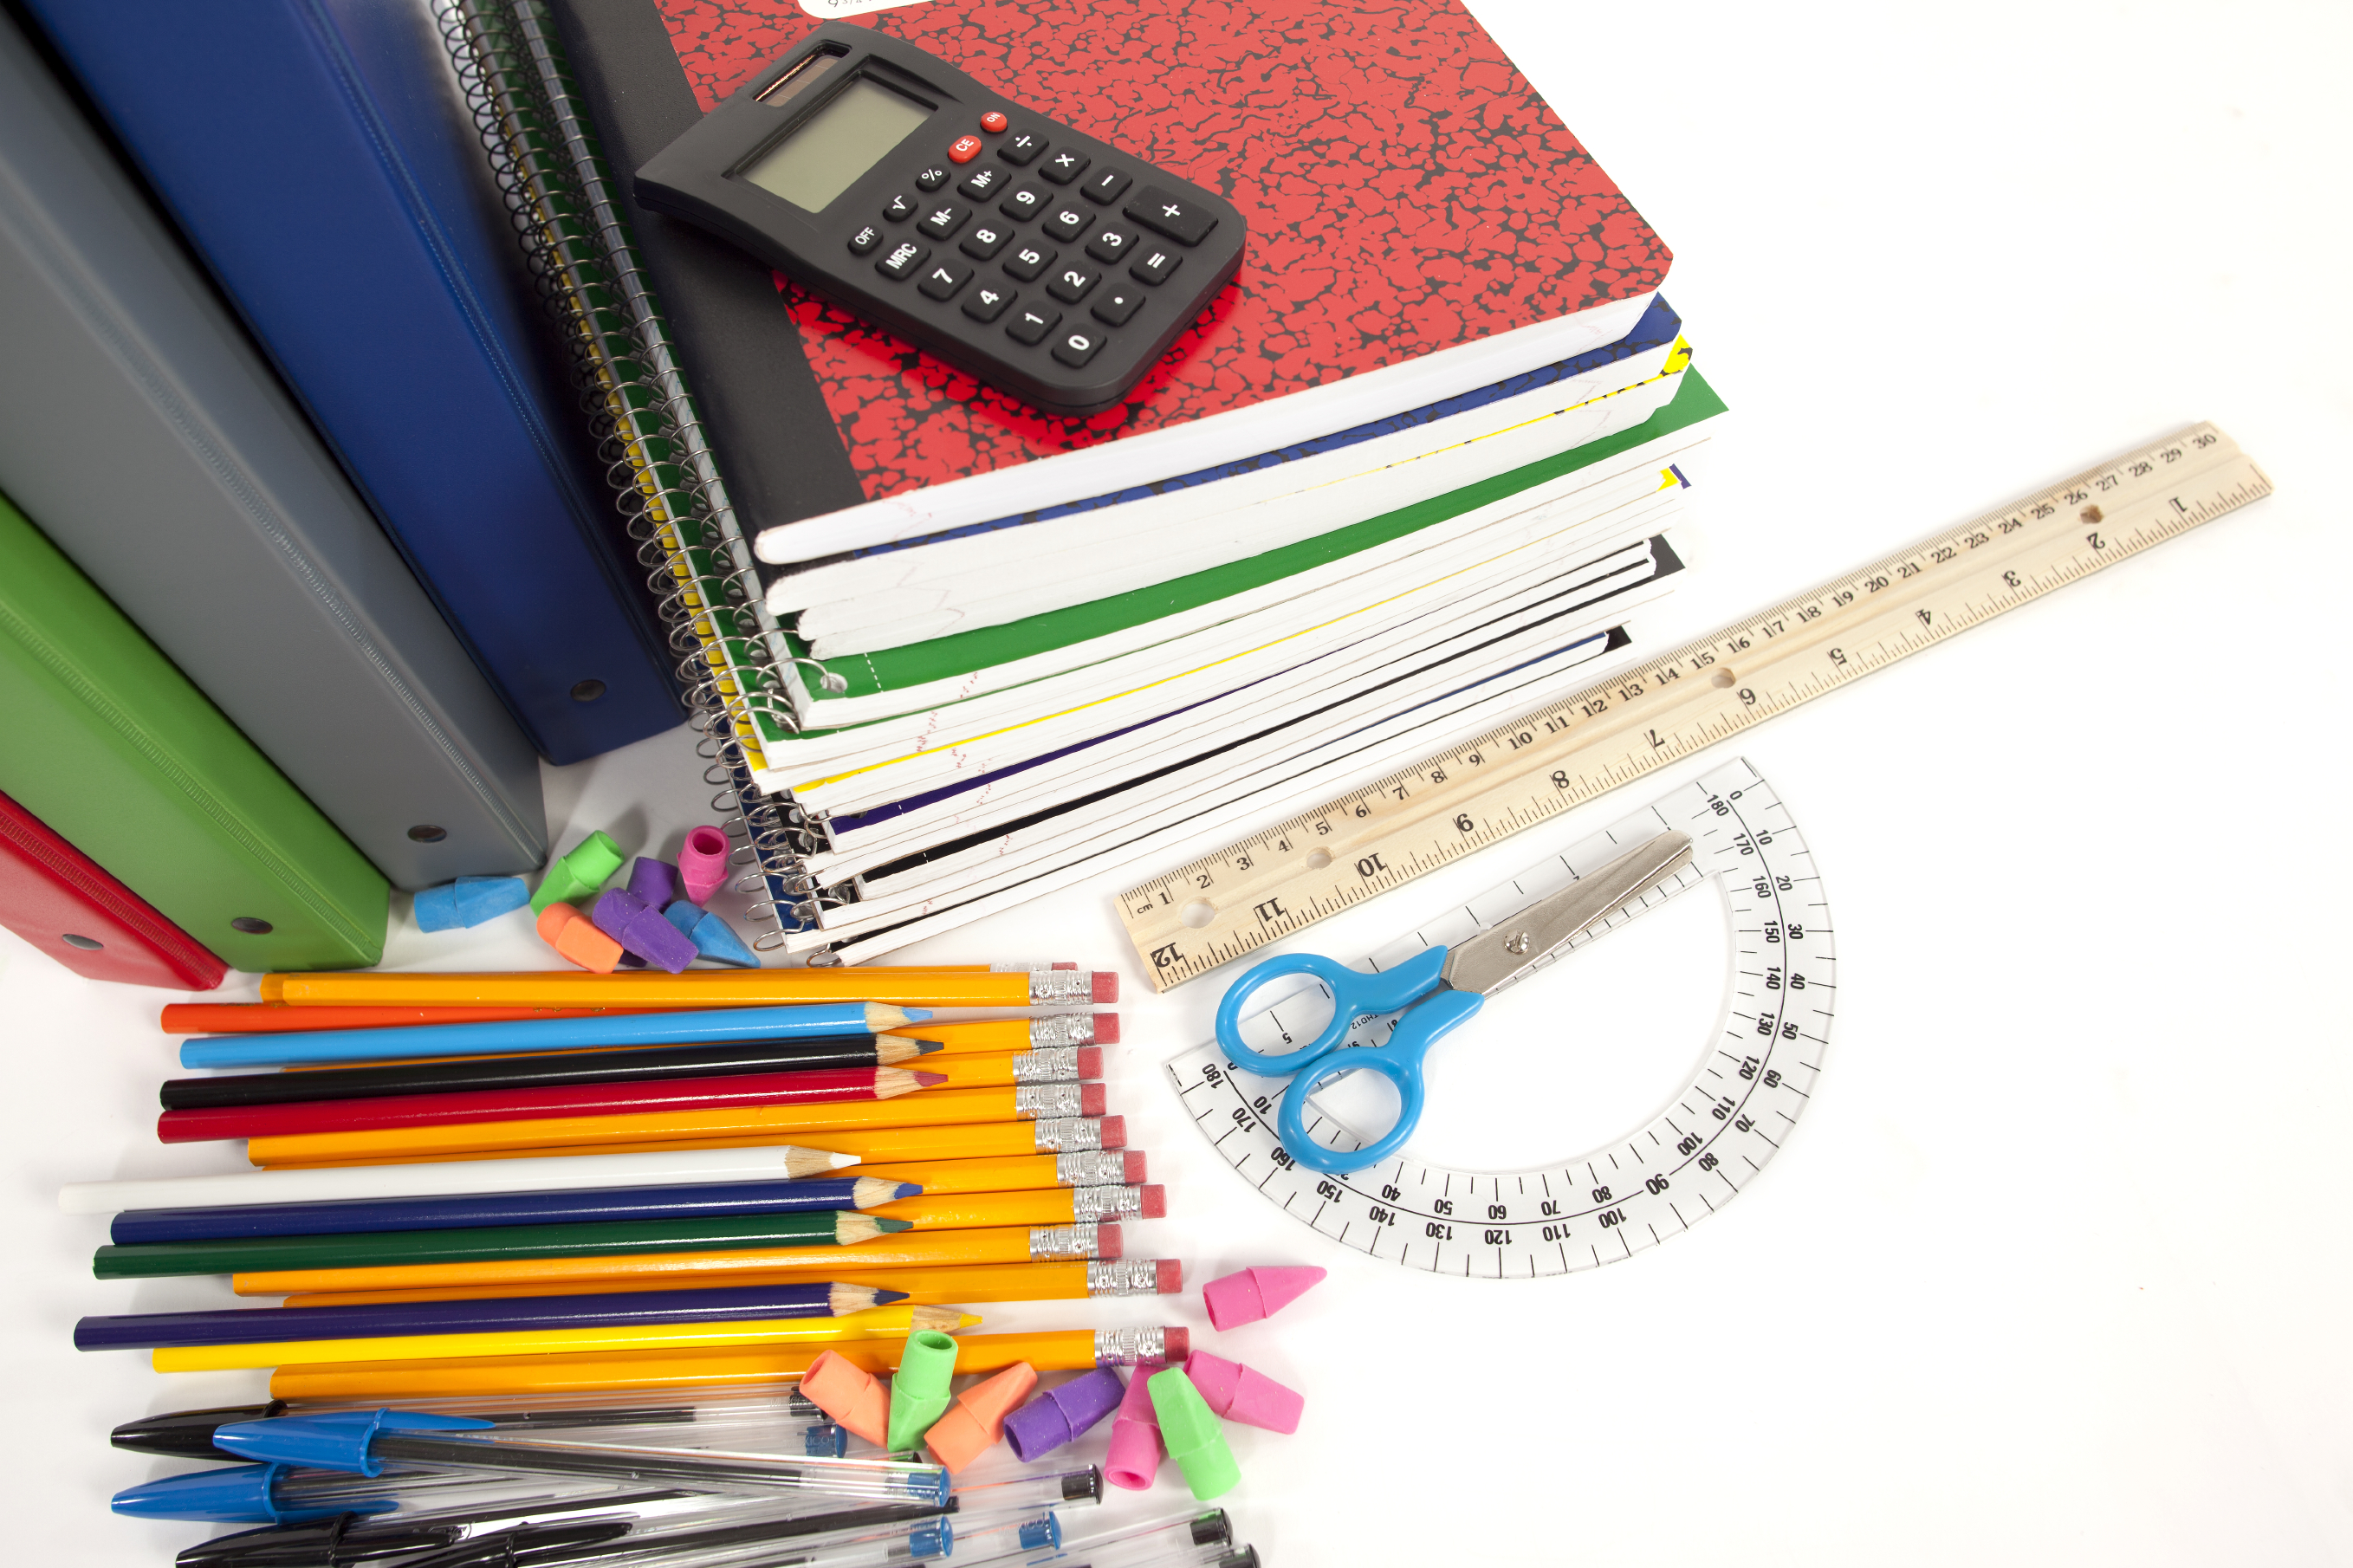 One of the best ways to be successful in high school is to always have a set of comprehensive study items on hand. Not only will you be prepared for just about every assignment that comes along, you'll also avoid time-consuming last-minute trips to the store. Extra supplies might be necessary as.